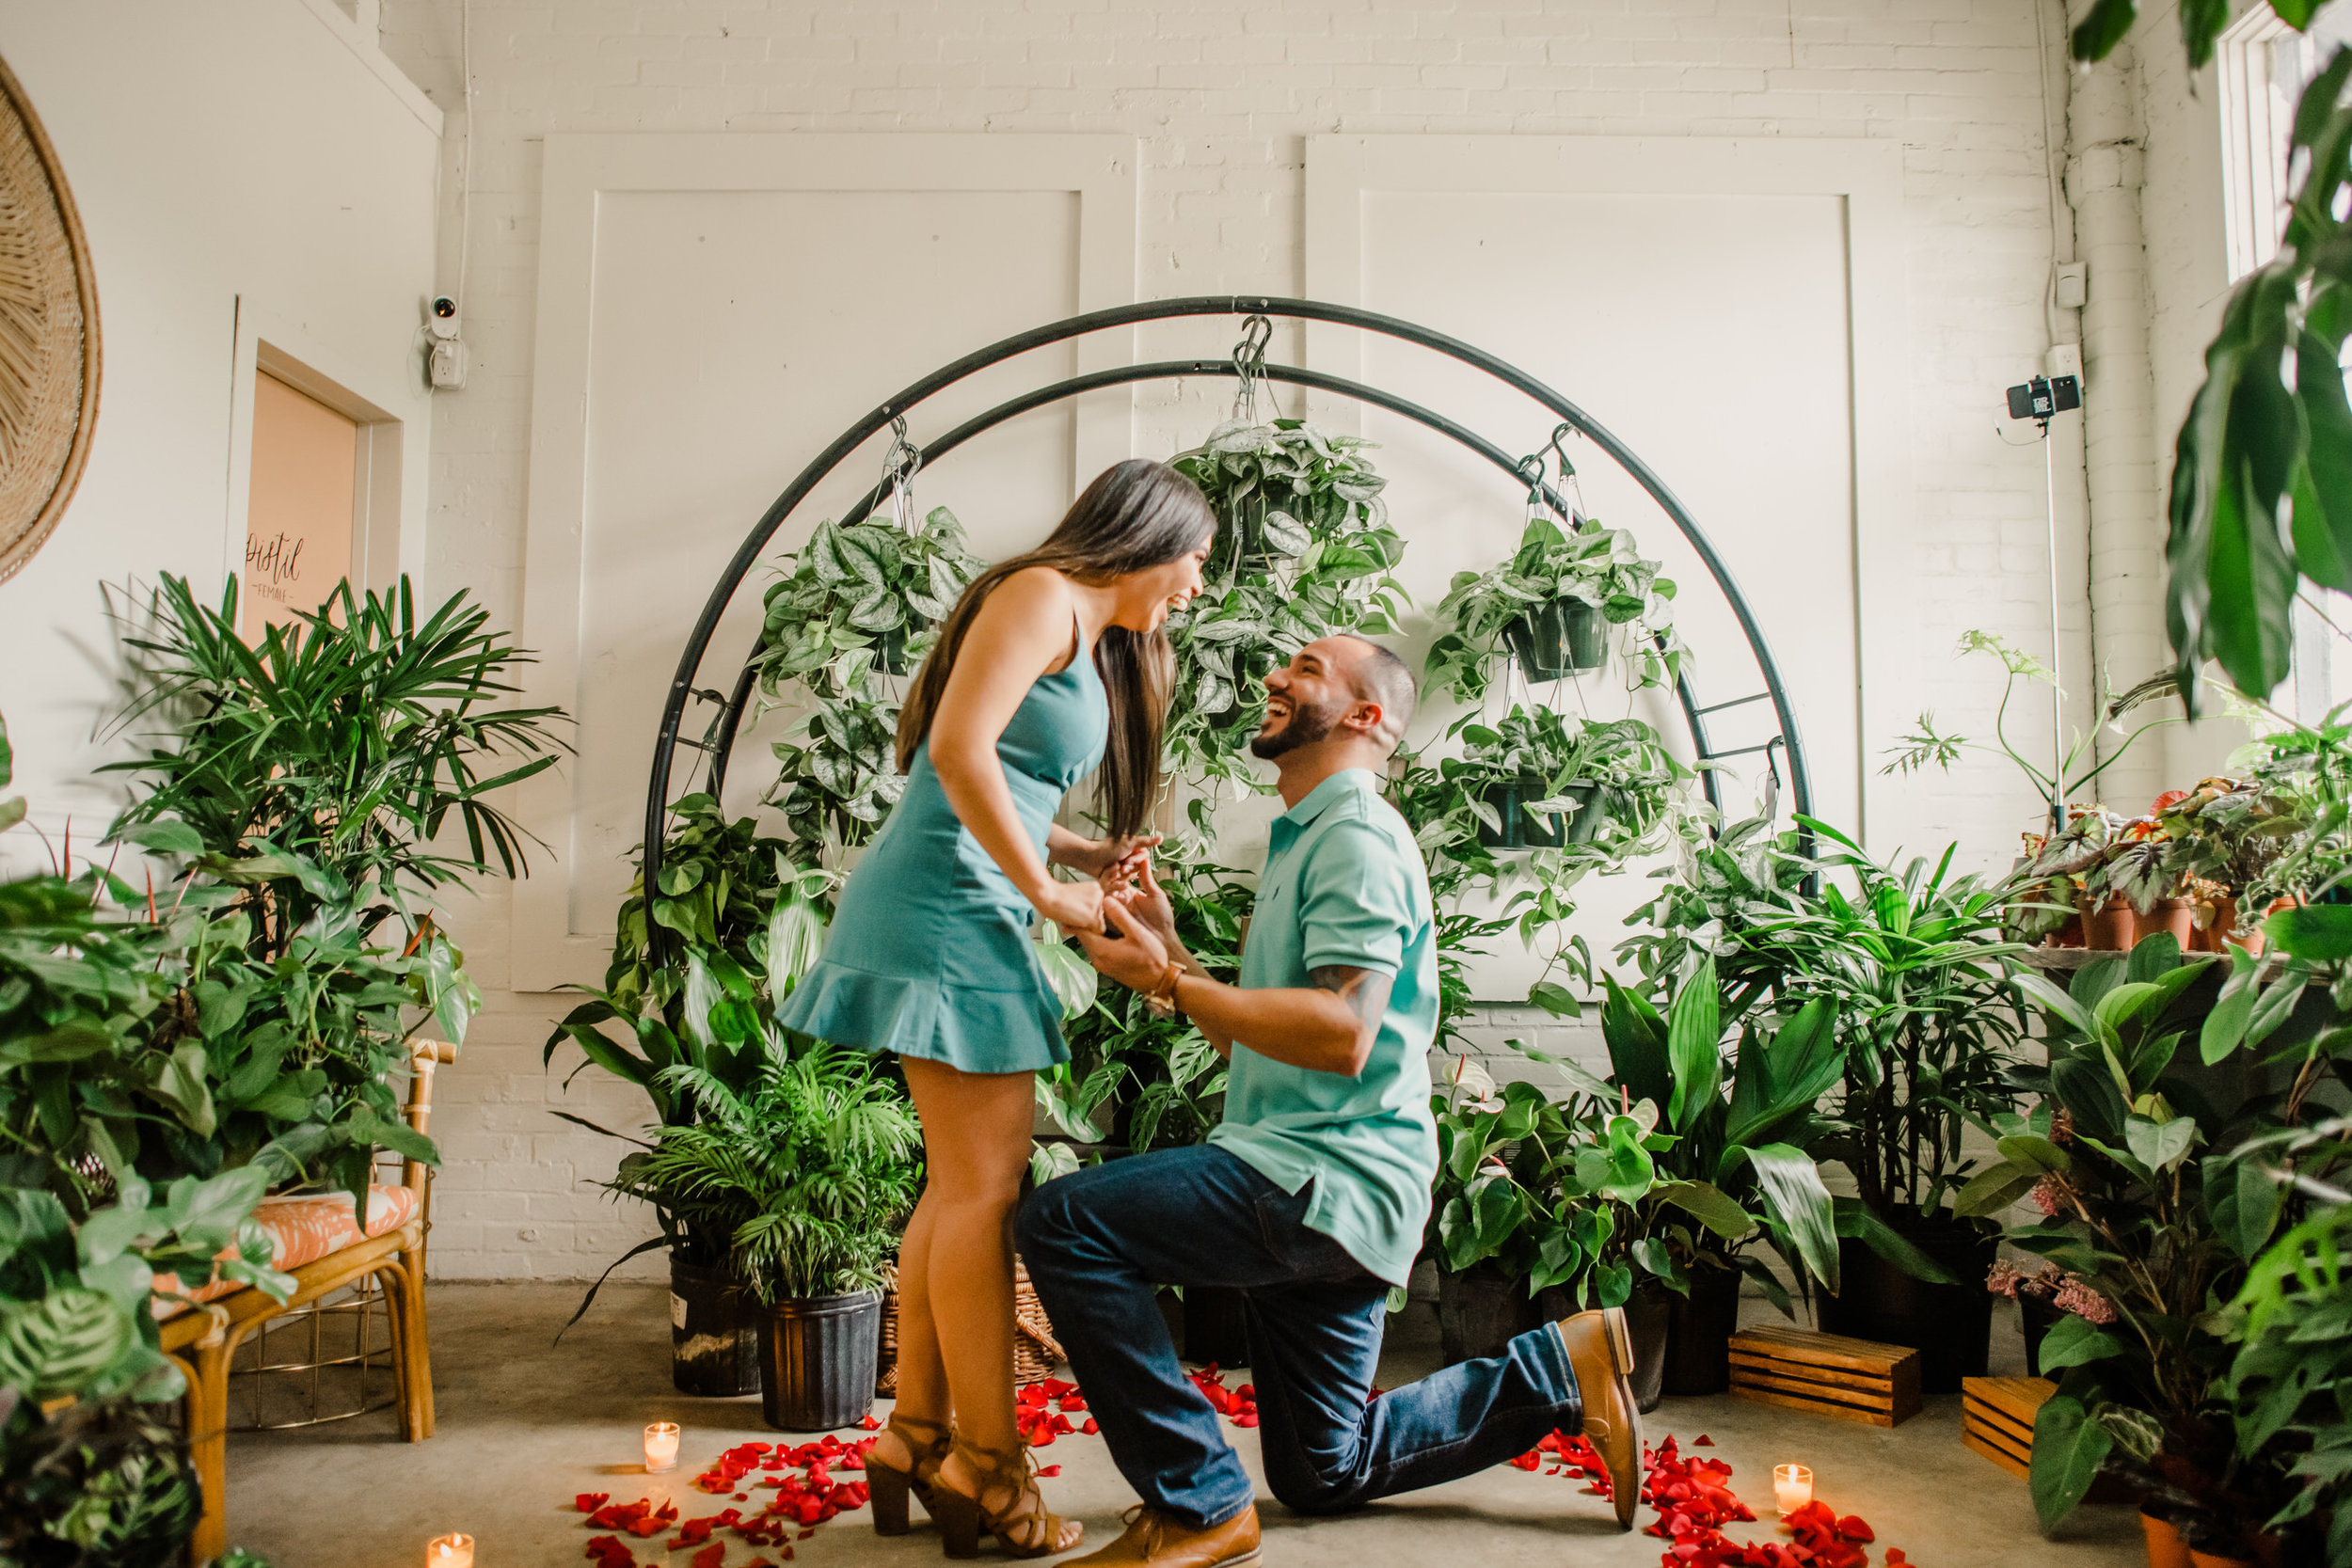 Valeria-Jonathan-Fancy-Free-Nursery-Tampa-Florida-Proposal-104.jpg